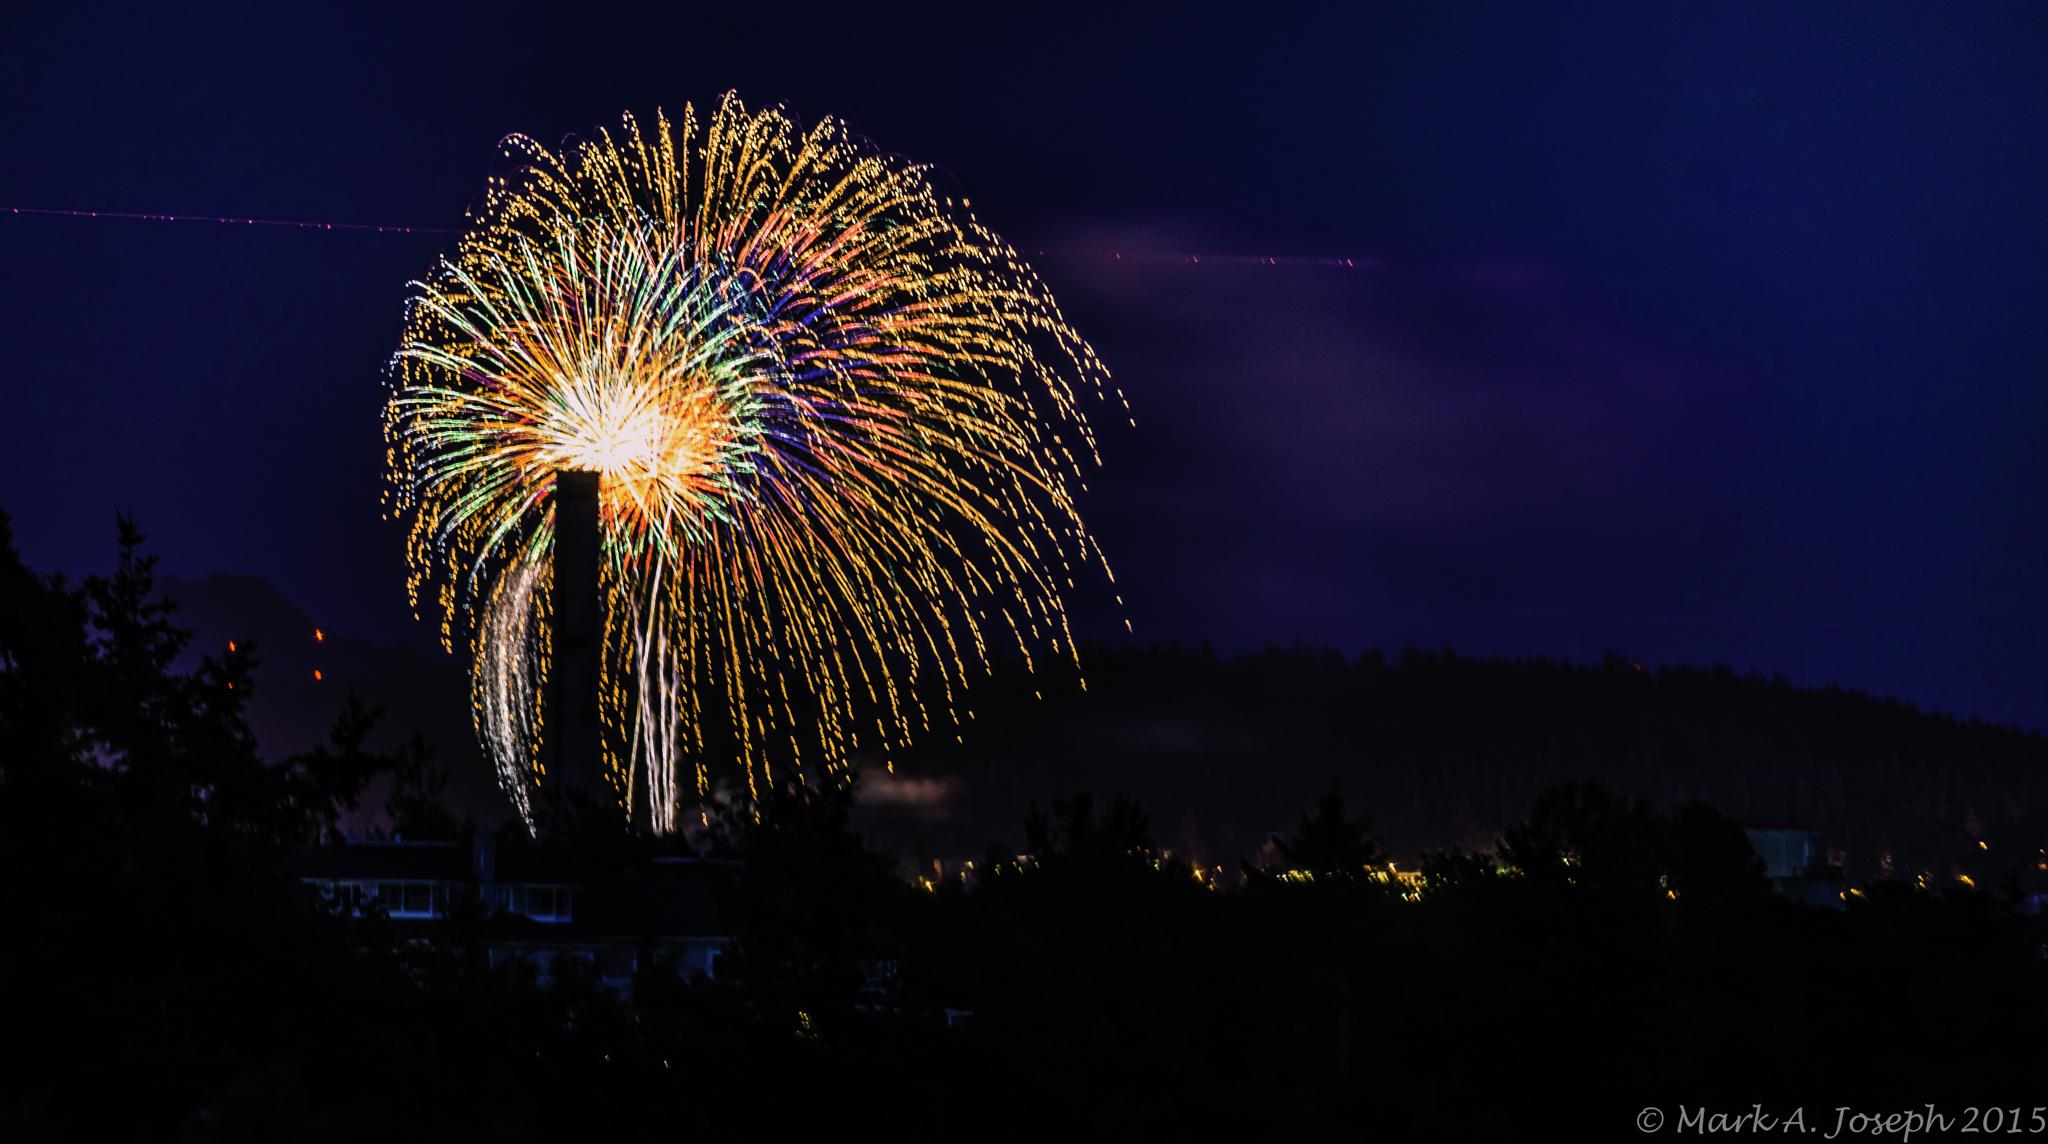 Fireworks by Mark Joseph